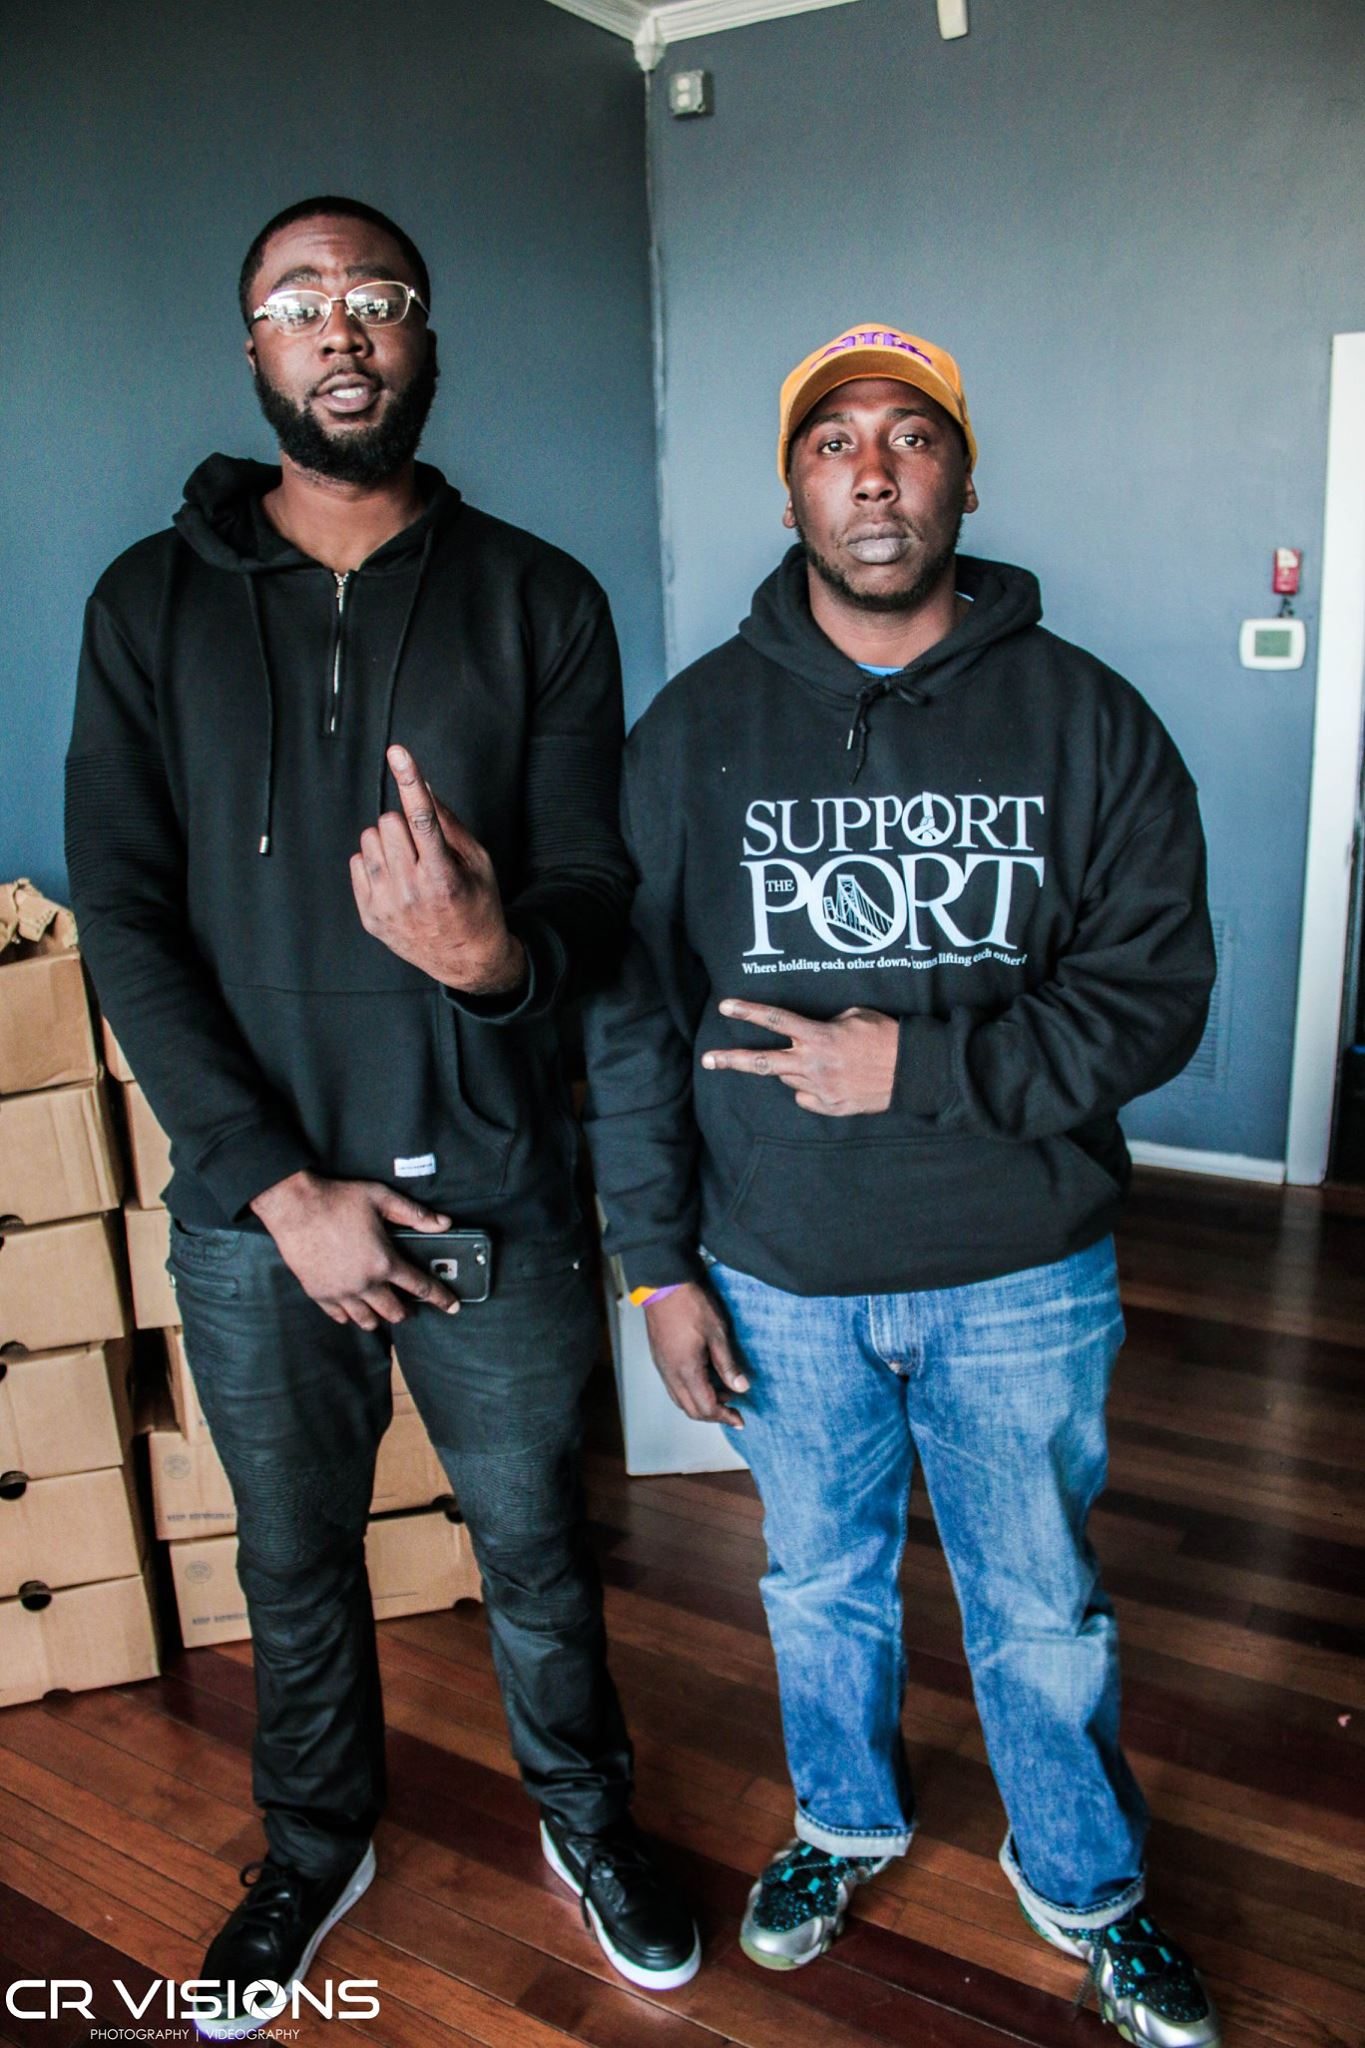 Devante BloodWorth Owner of On The Edge Barber & Cedric Harrison Exec Director of Support The Port Foundation, Inc. Posing for The Camera during Turkey Bowl Tuesday (Free Turkey Giveaway)